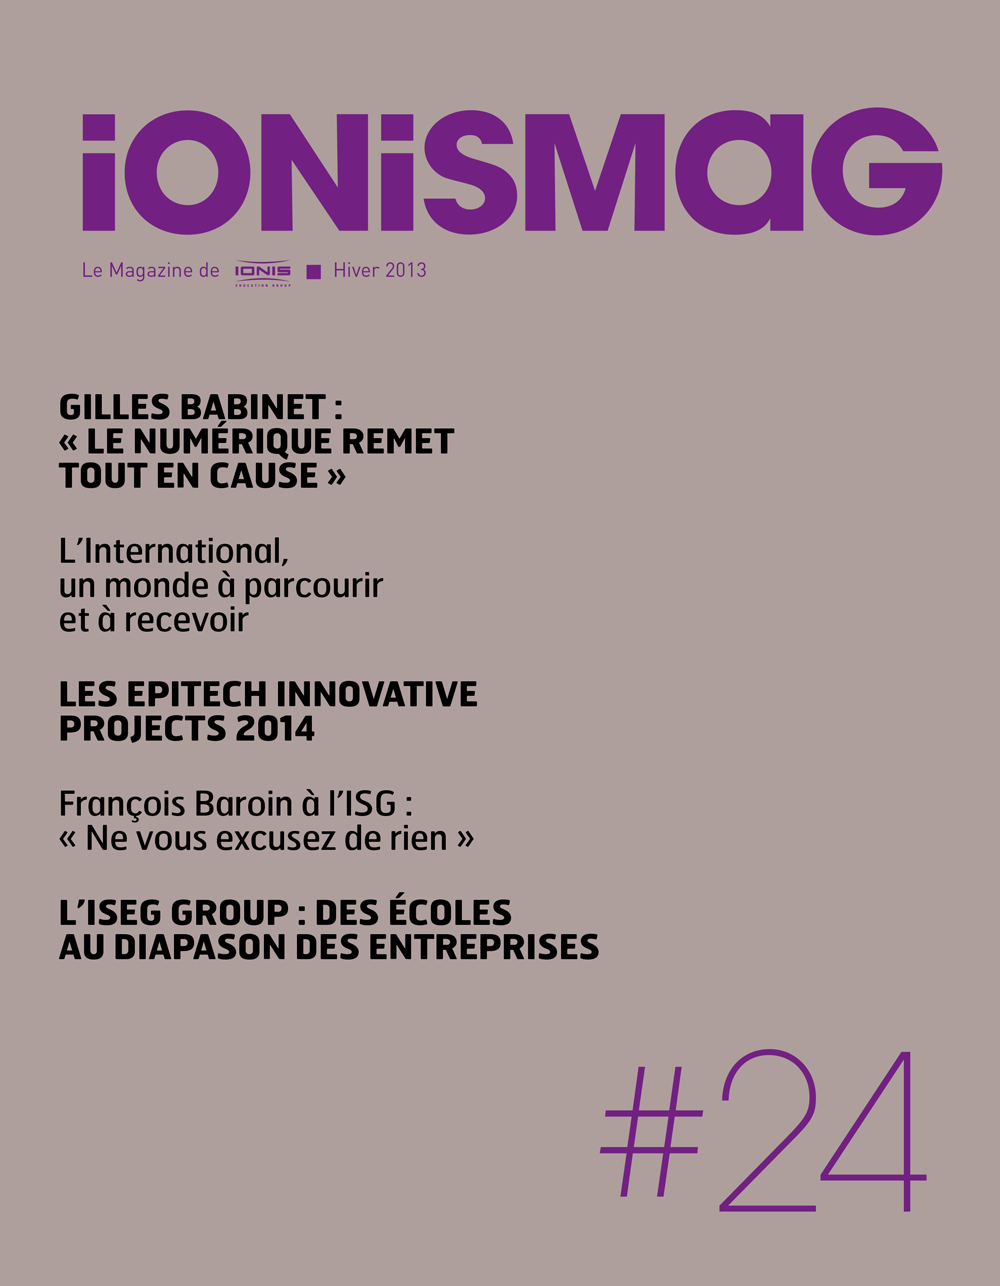 IONIS MAG 24